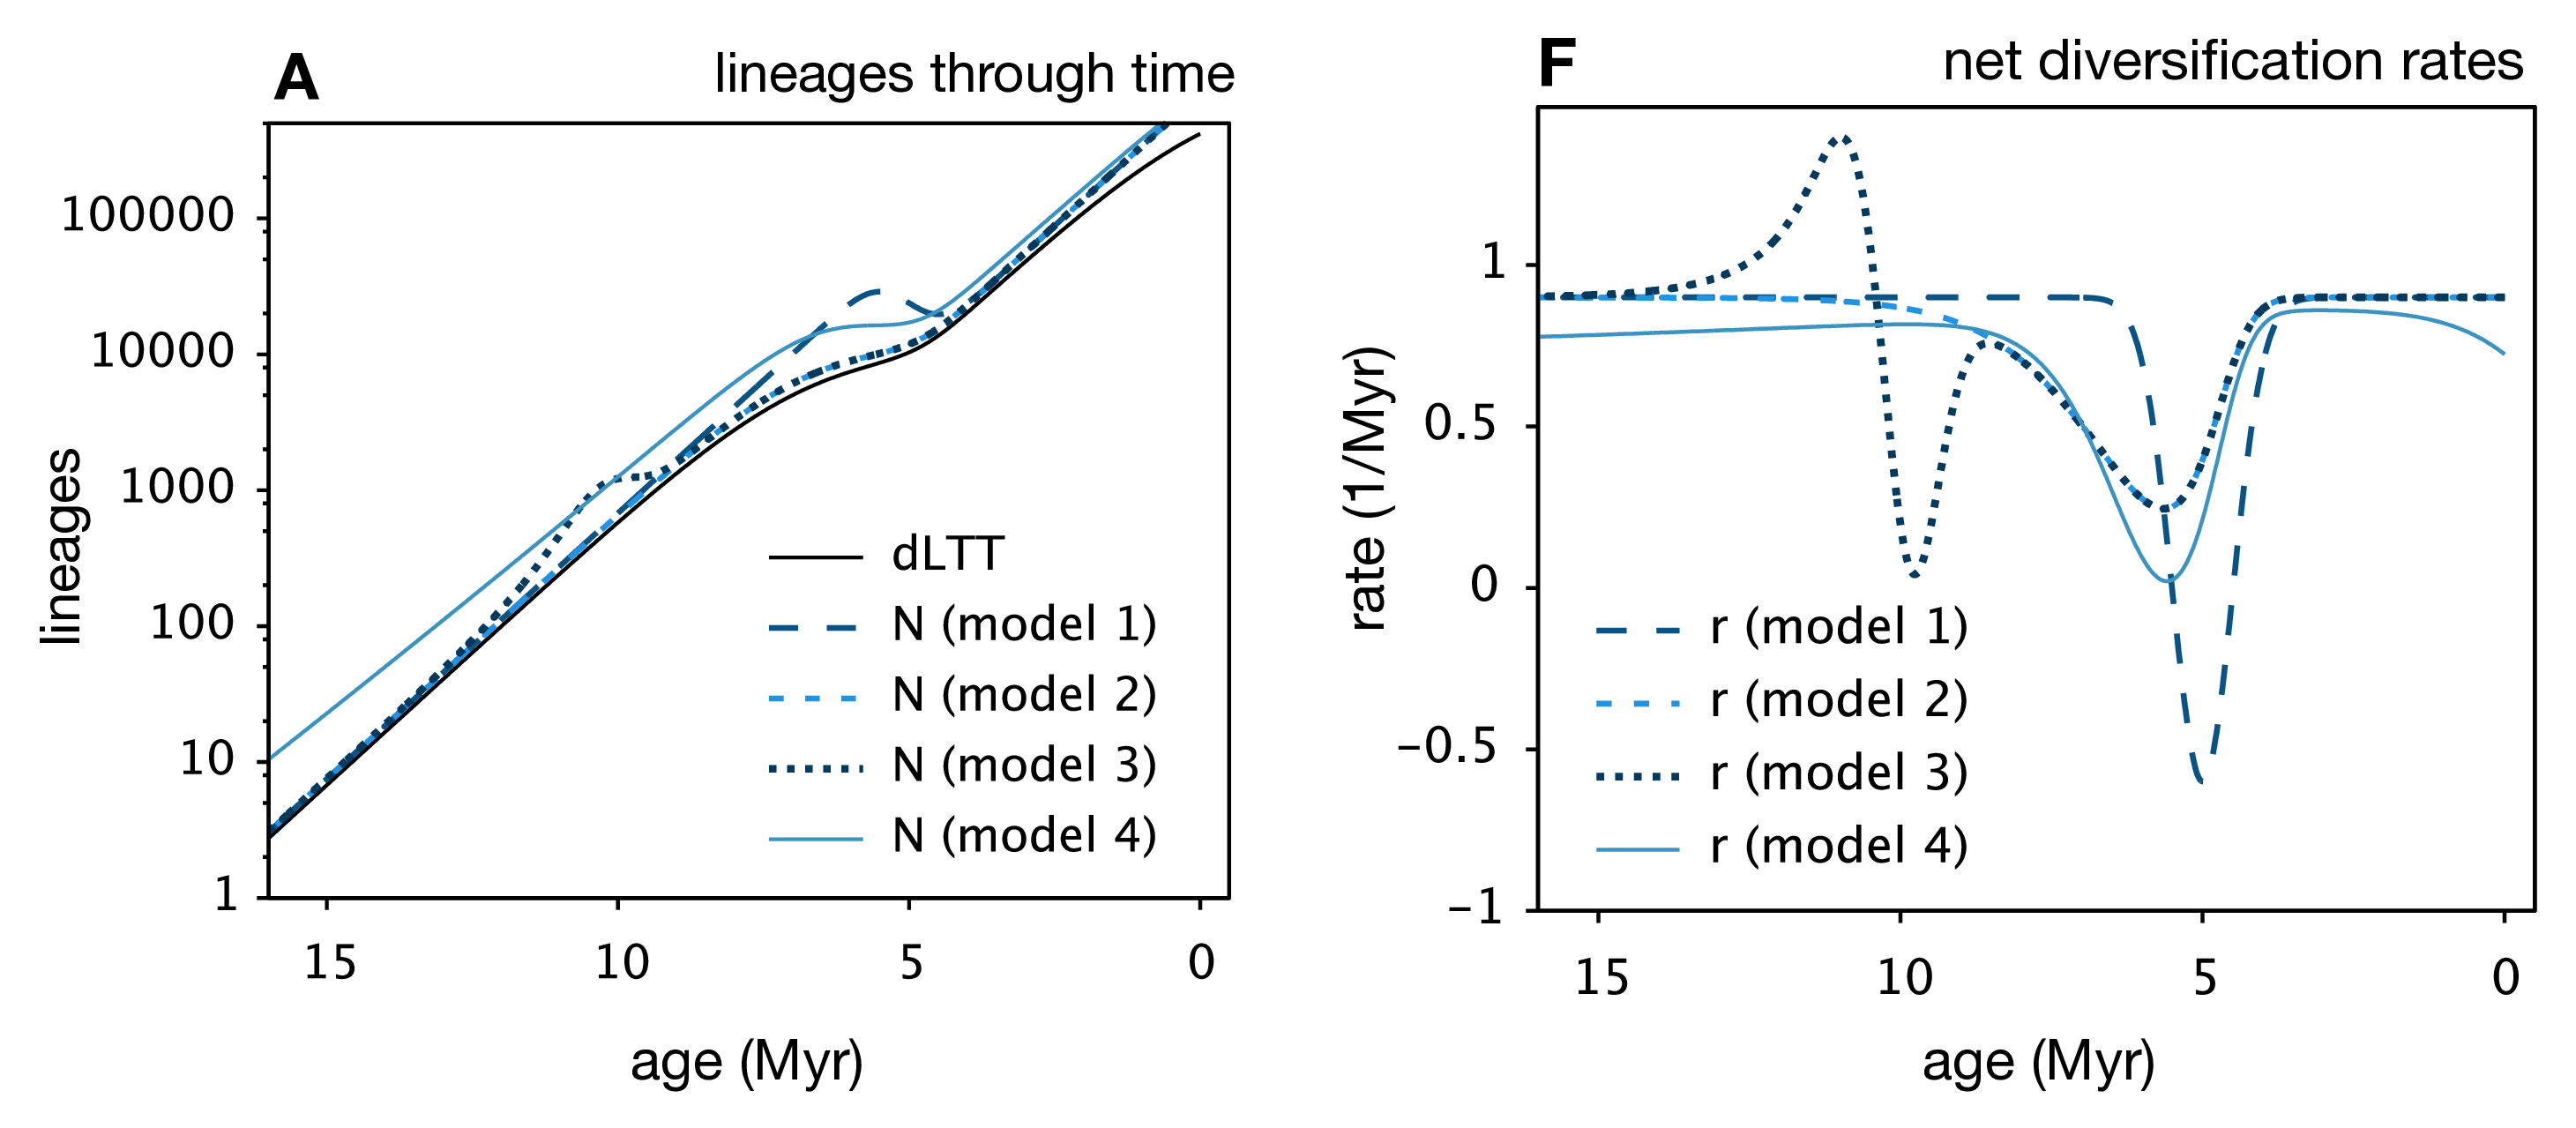 Lineage-through-time plot of four similar looking models, but with very different diversification rate histories. Modified from Figure 1 of Louca & Pennell 2019.